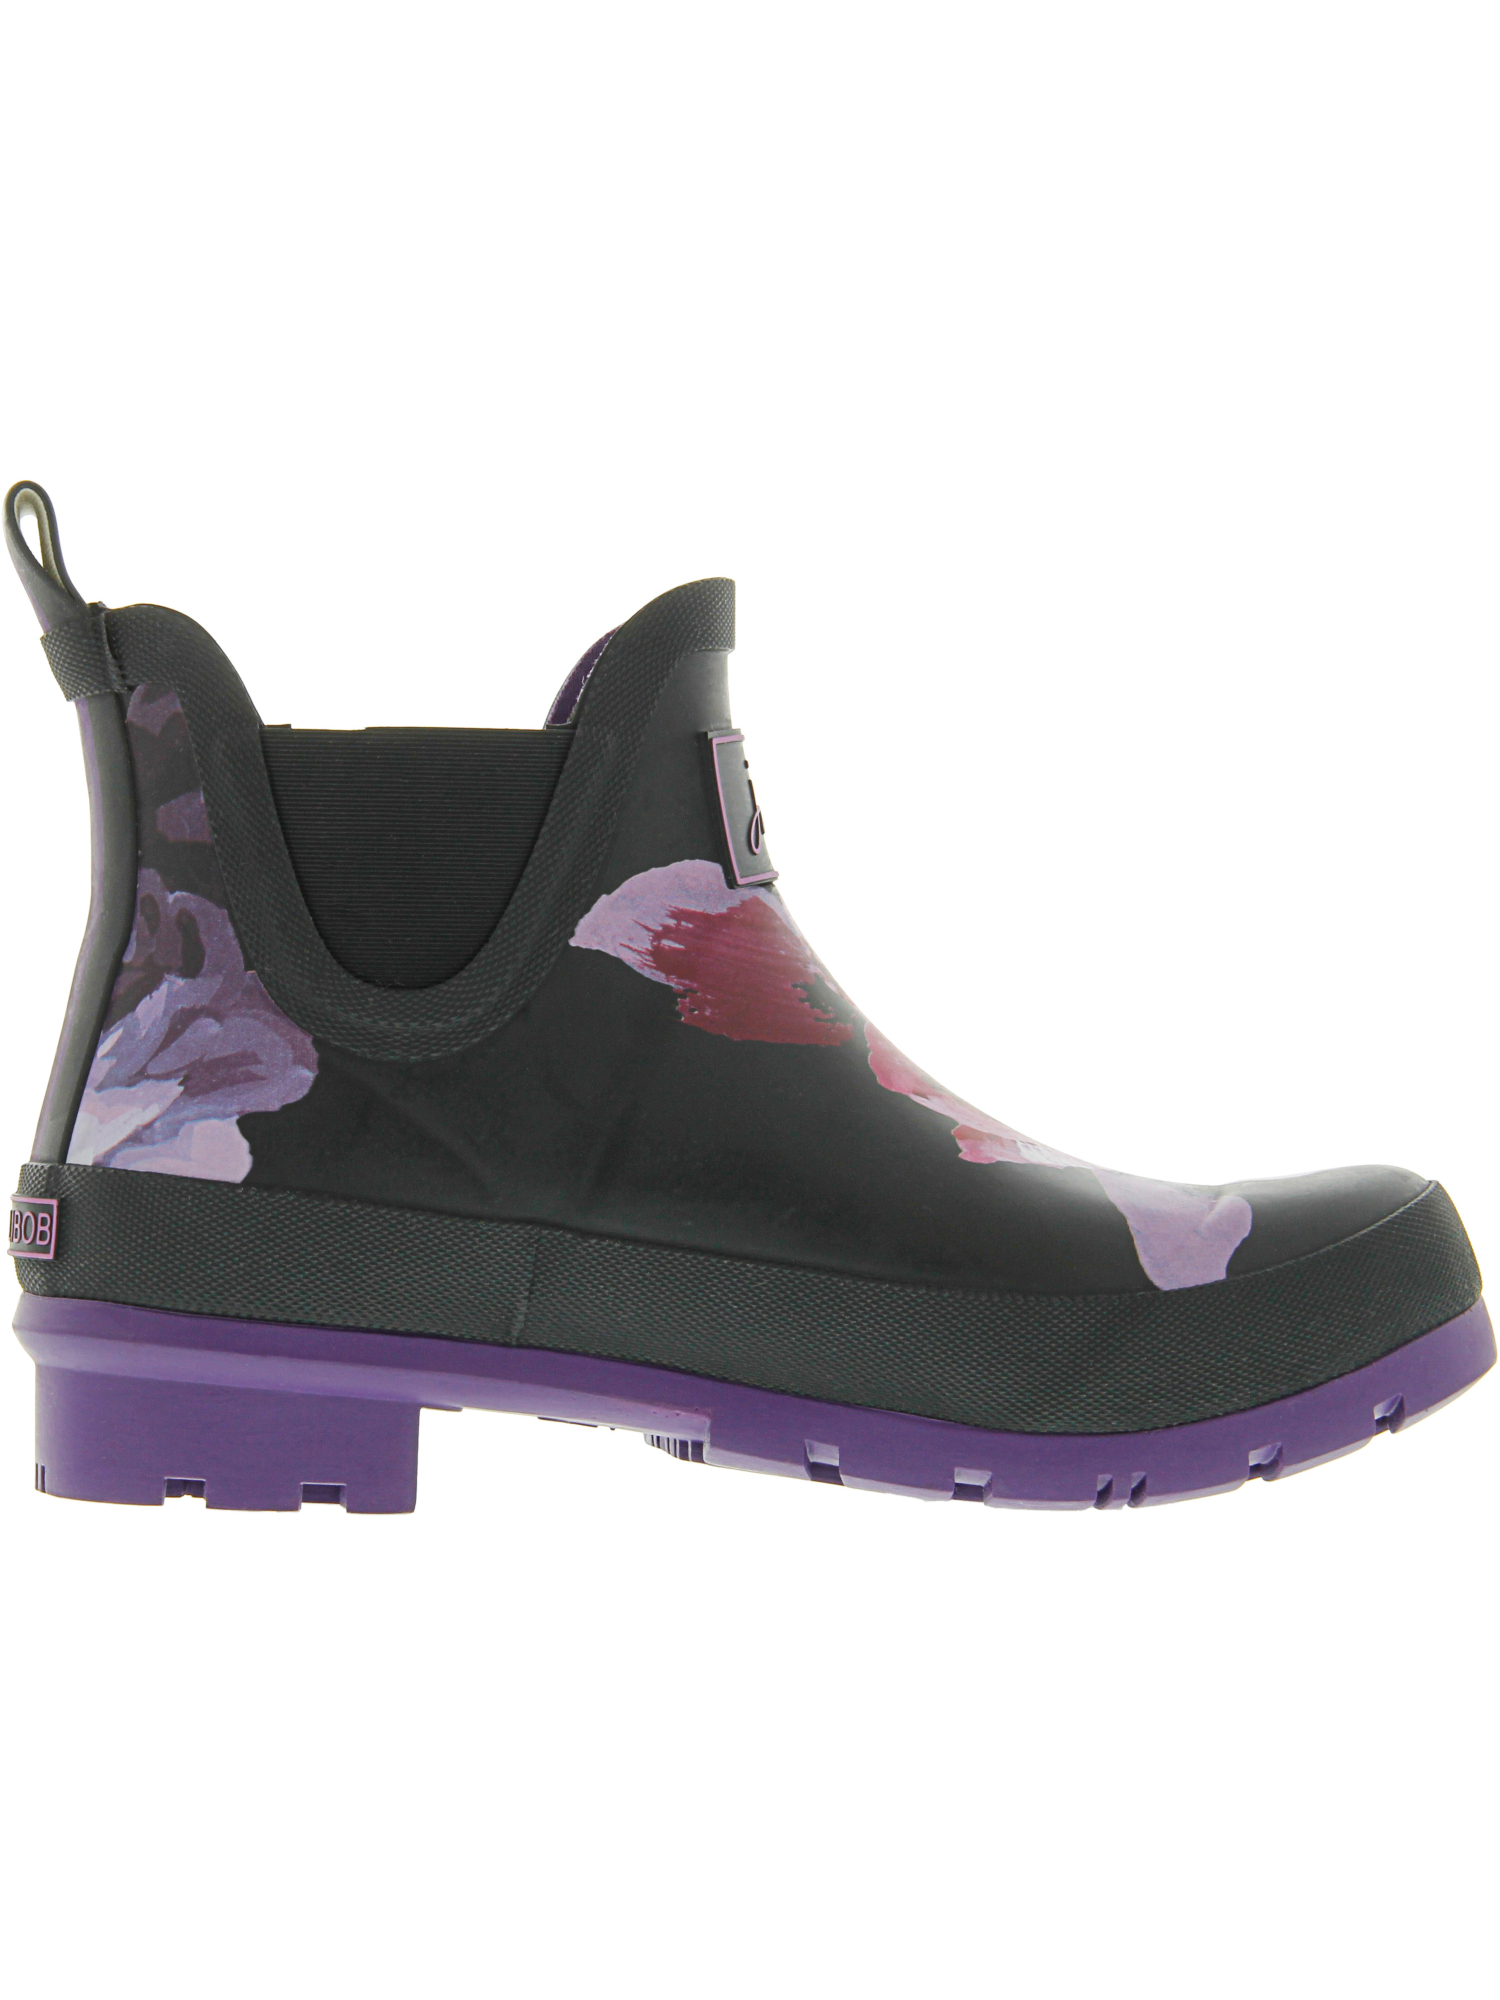 Joules-Women-039-s-Wellibob-Ankle-High-Rubber-Rain-Boot thumbnail 8